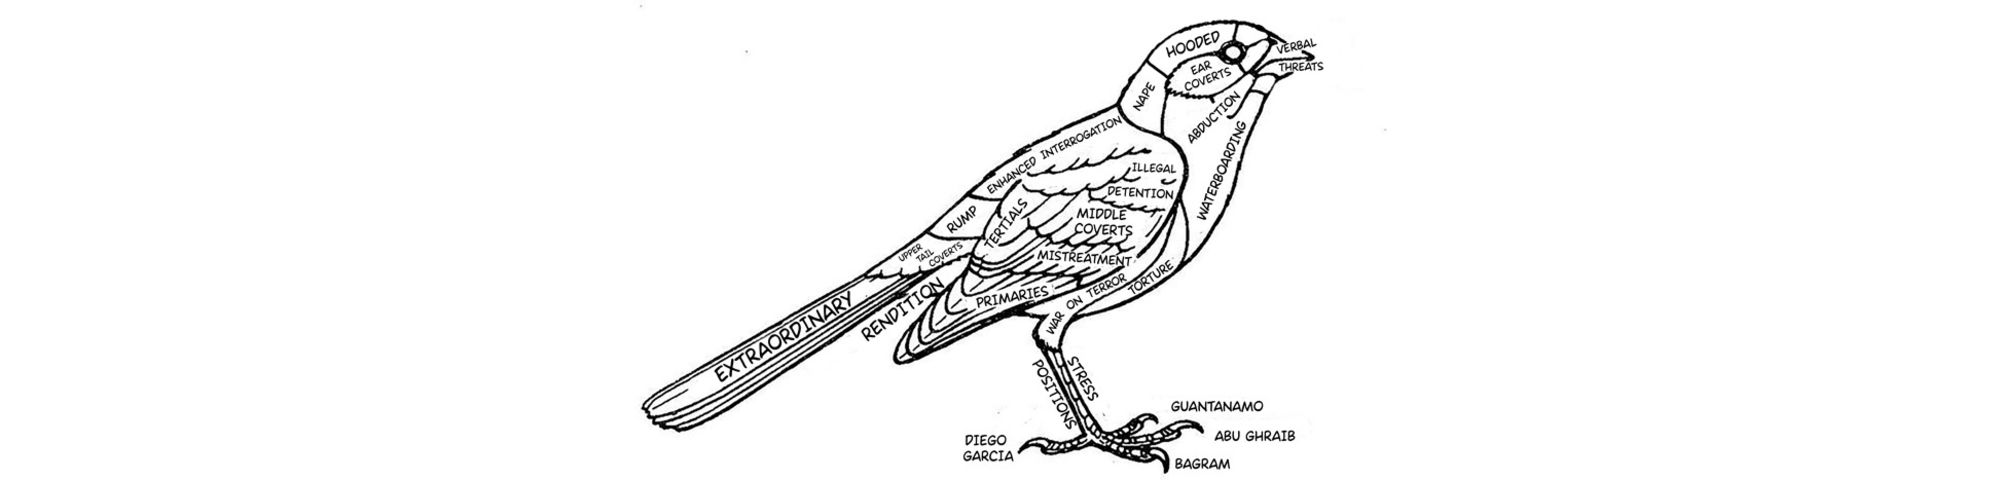 Line drawing of bird in black and white, covered in words like rendition, war on terror, torture.